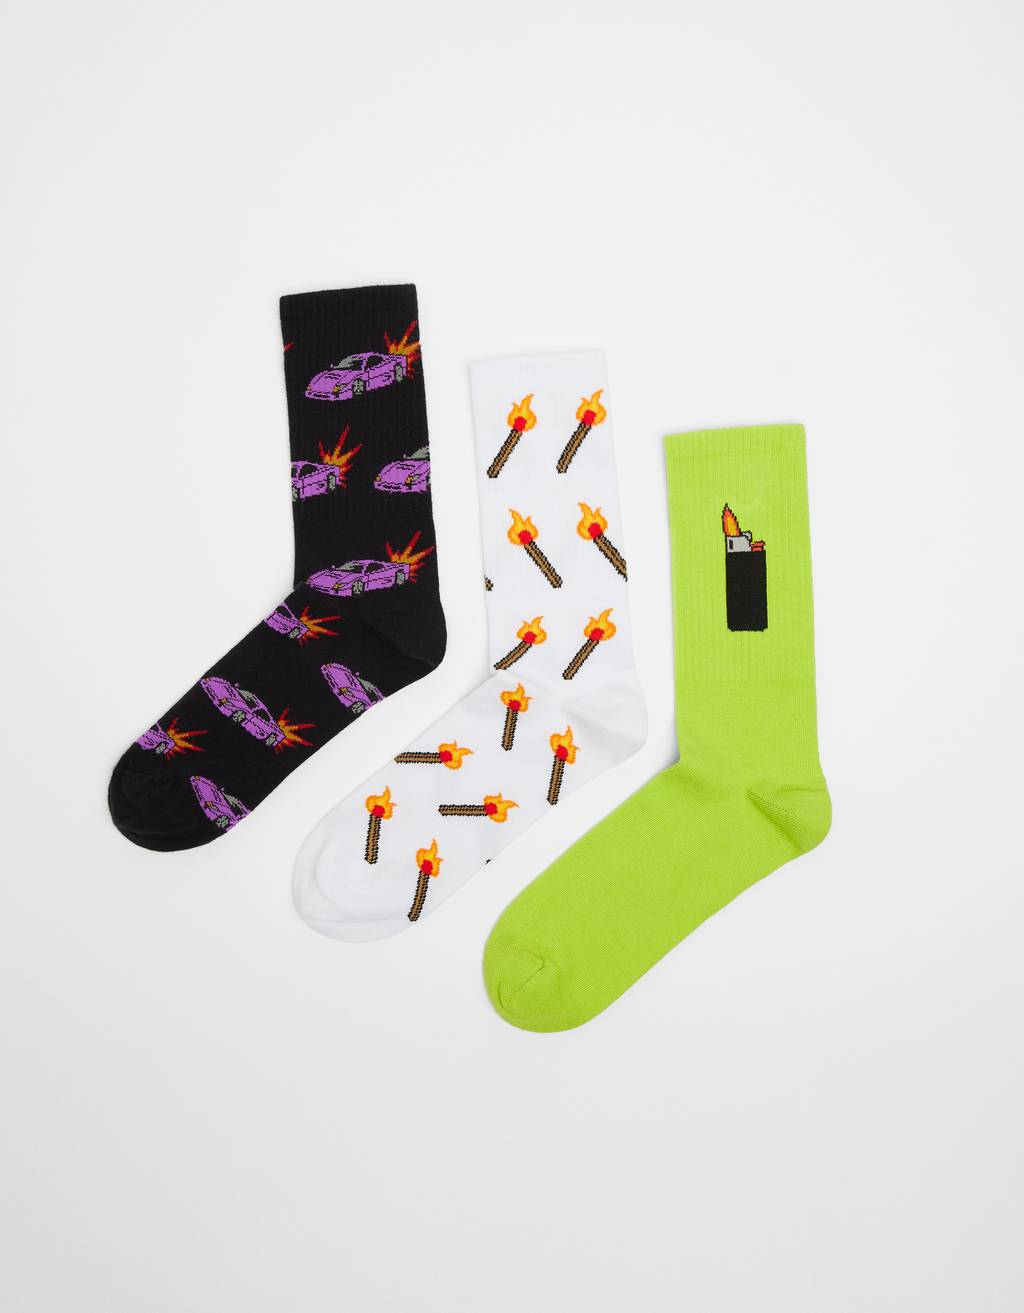 Pack of '80s socks